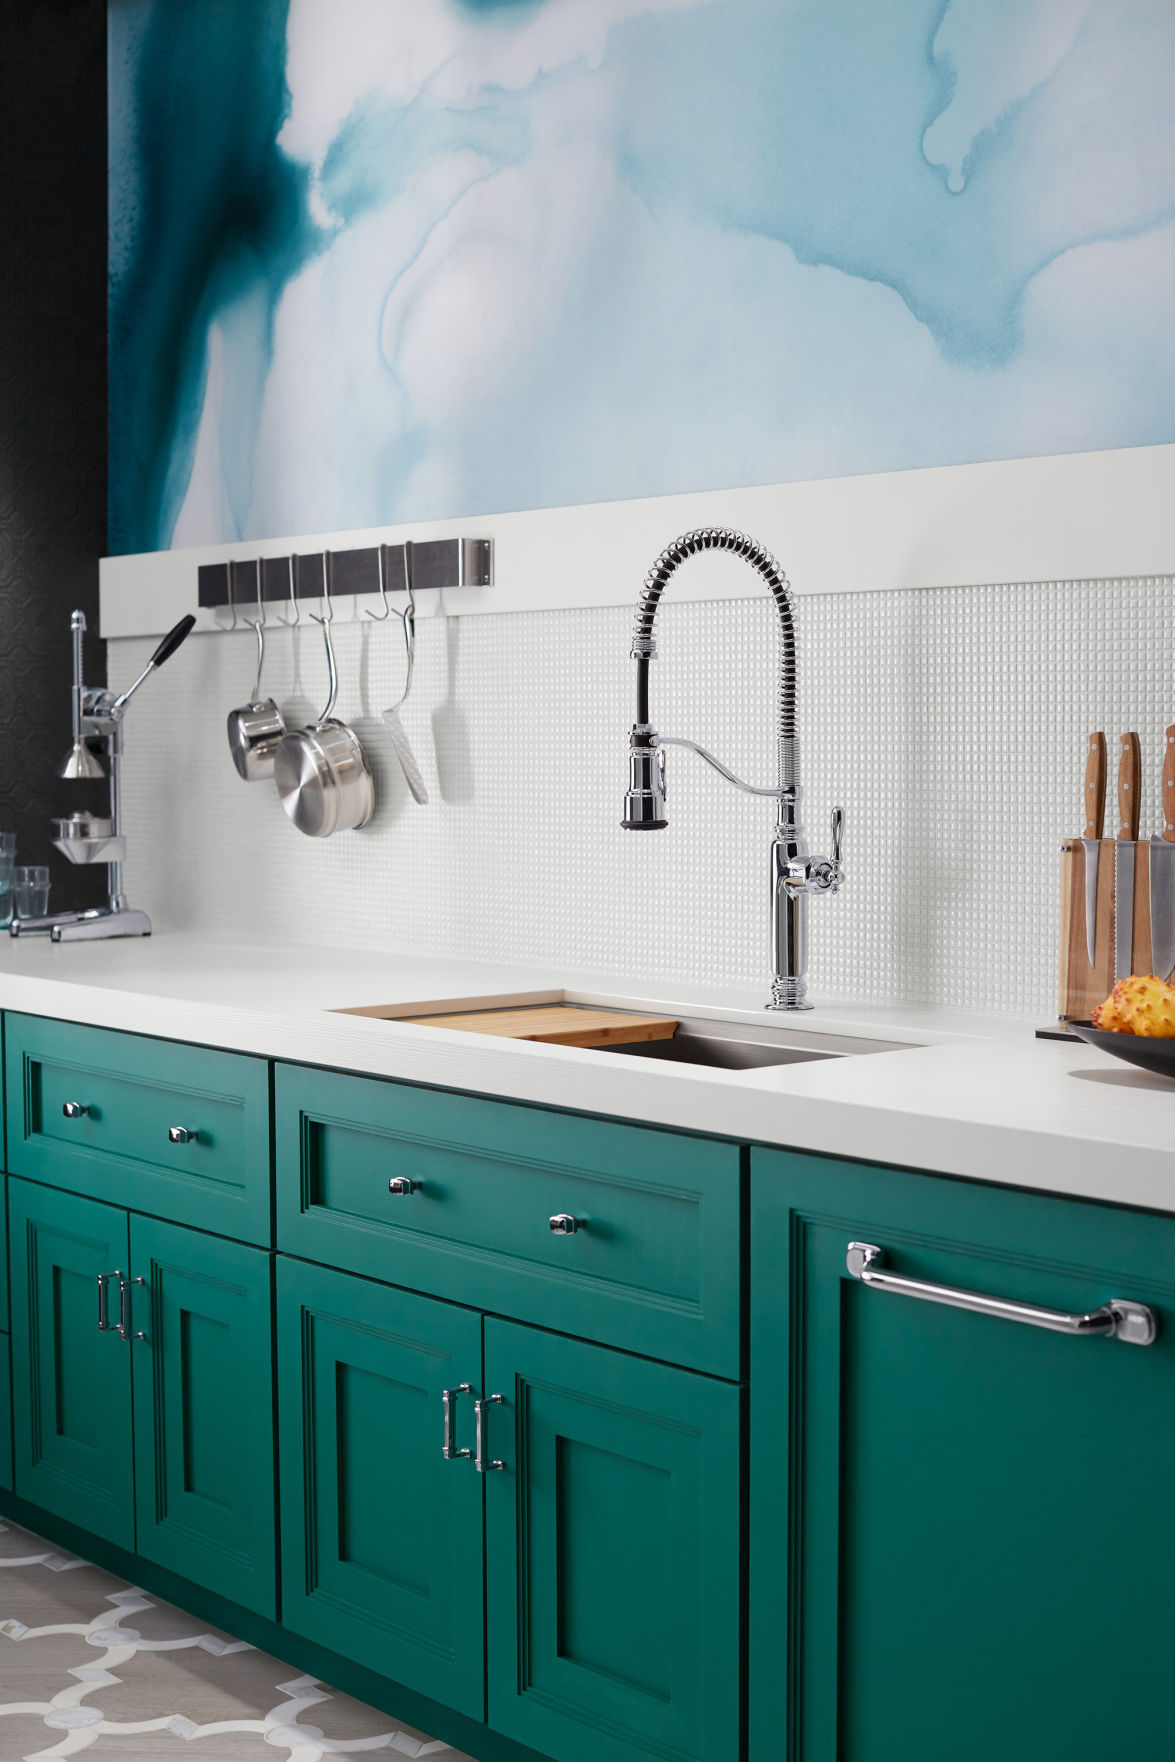 Plumber: Kitchen faucet made for more work and less play ...